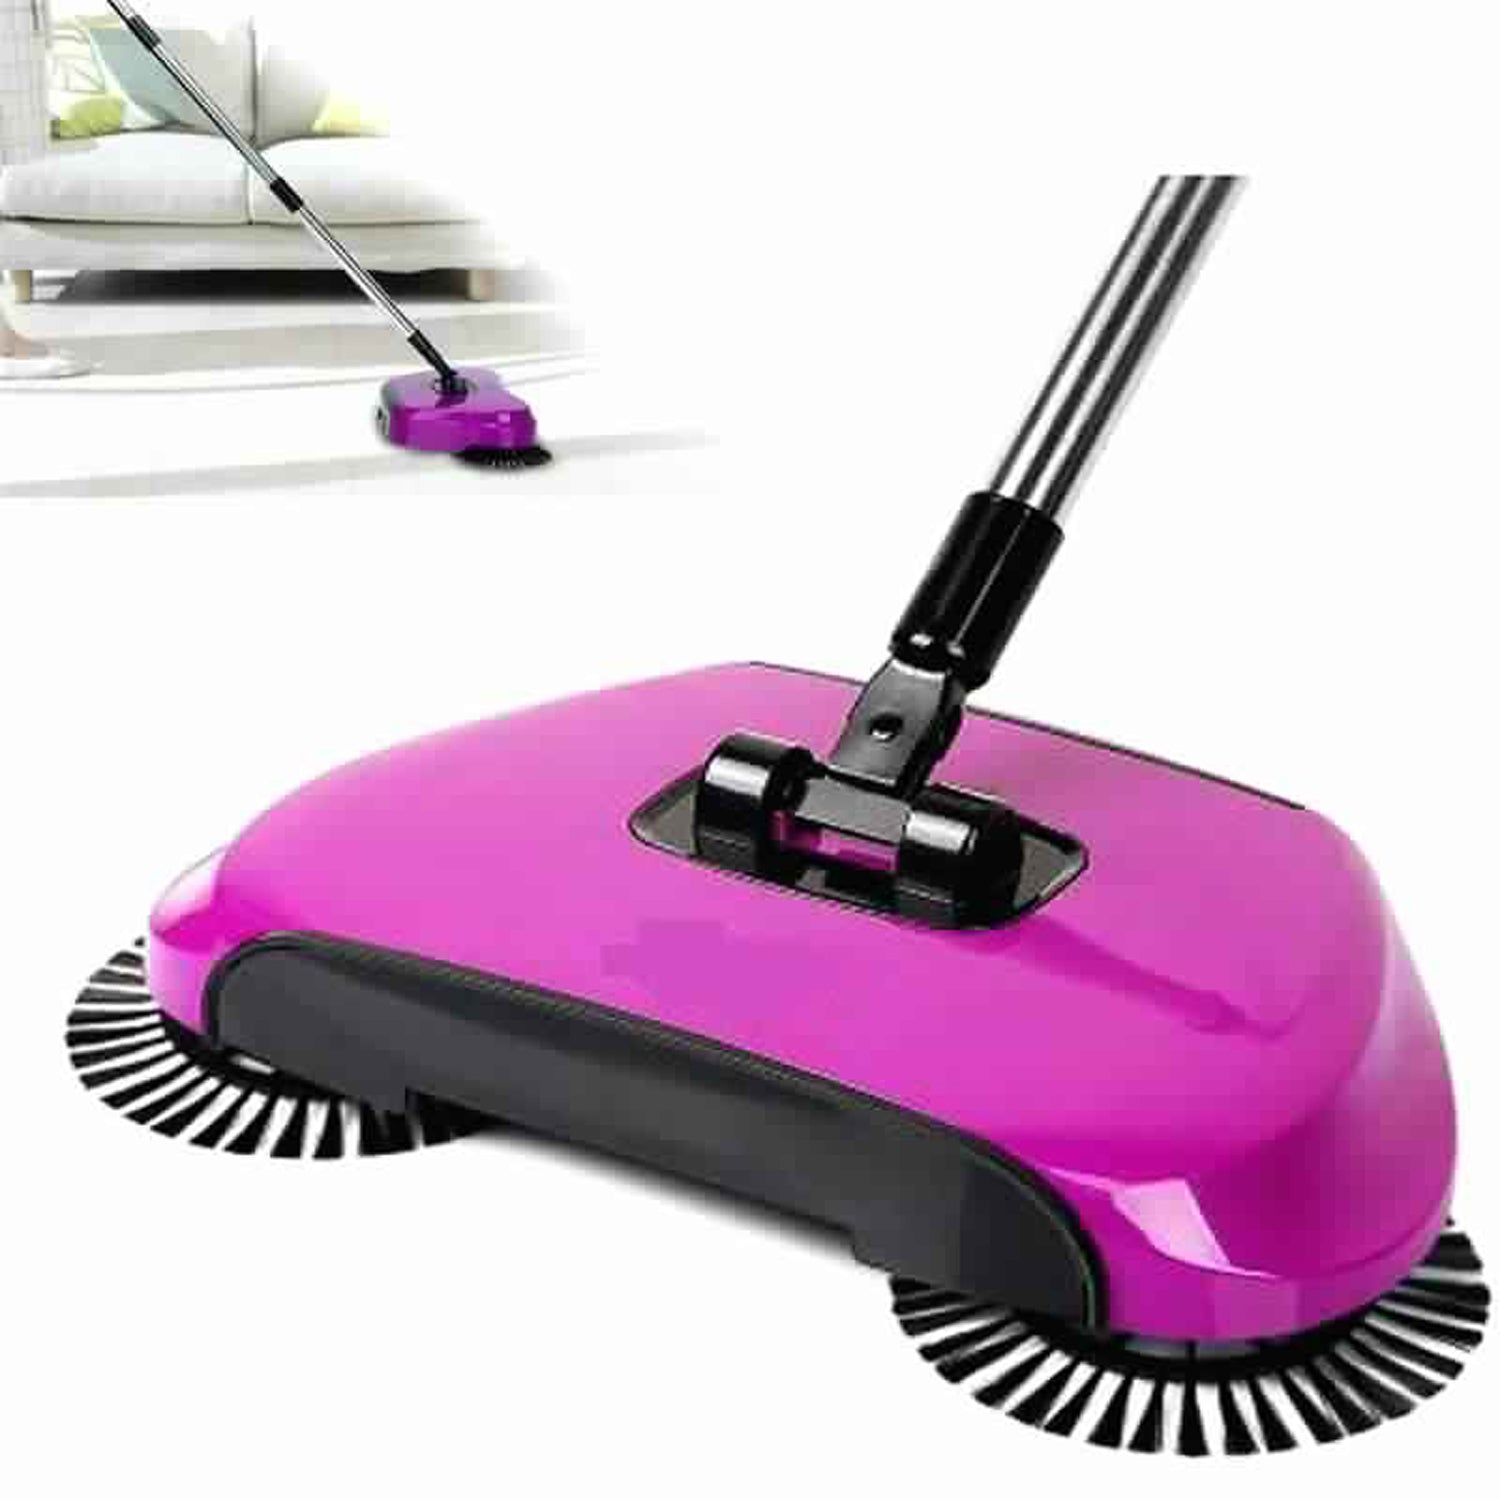 All in one Sweep Drag  Multi Functional Broom Machine for Home & Office